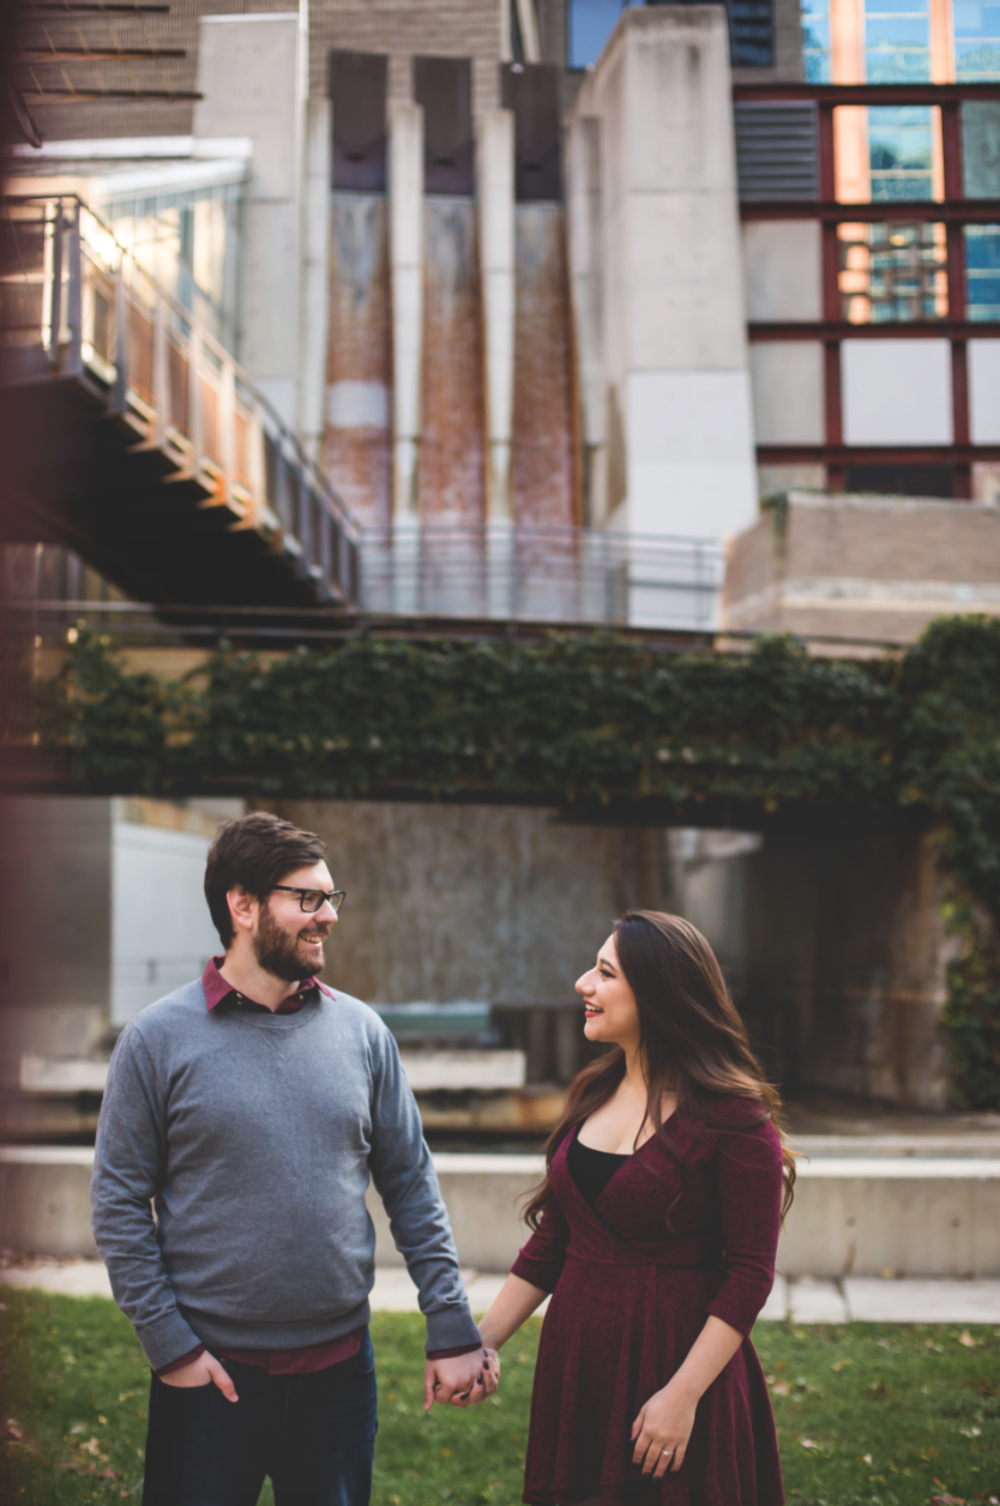 Engagement-Session-Hamilton-Burlington-Oakville-Niagara-Toronto-Wedding-Photographer-Engaged-Photography-Urban-Engaged-Downtown-Golden-Hour-Moments-by-Lauren-Photo-Image-15.png